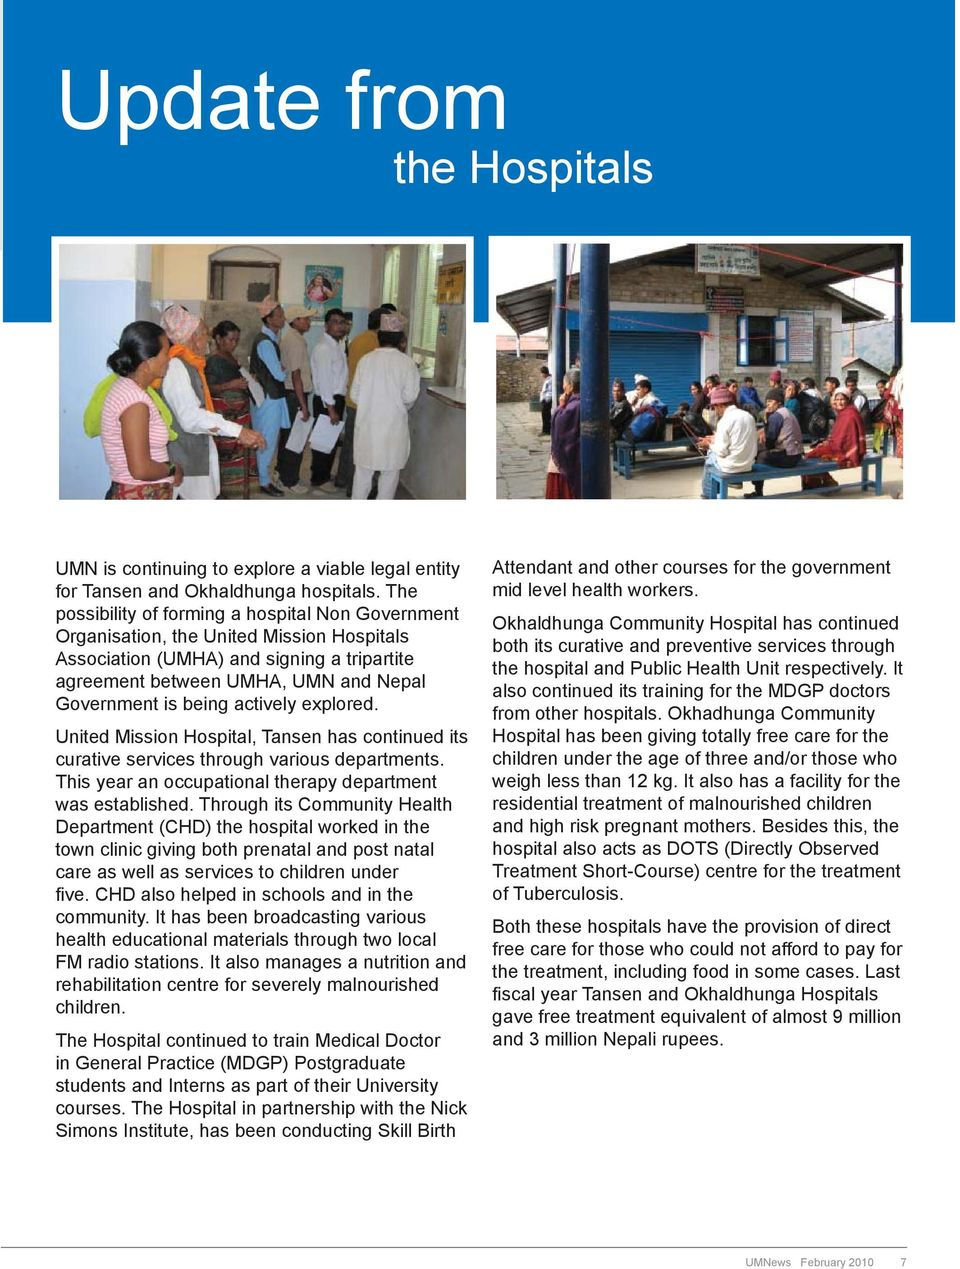 actively explored. United Mission Hospital, Tansen has continued its curative services through various departments. This year an occupational therapy department was established.